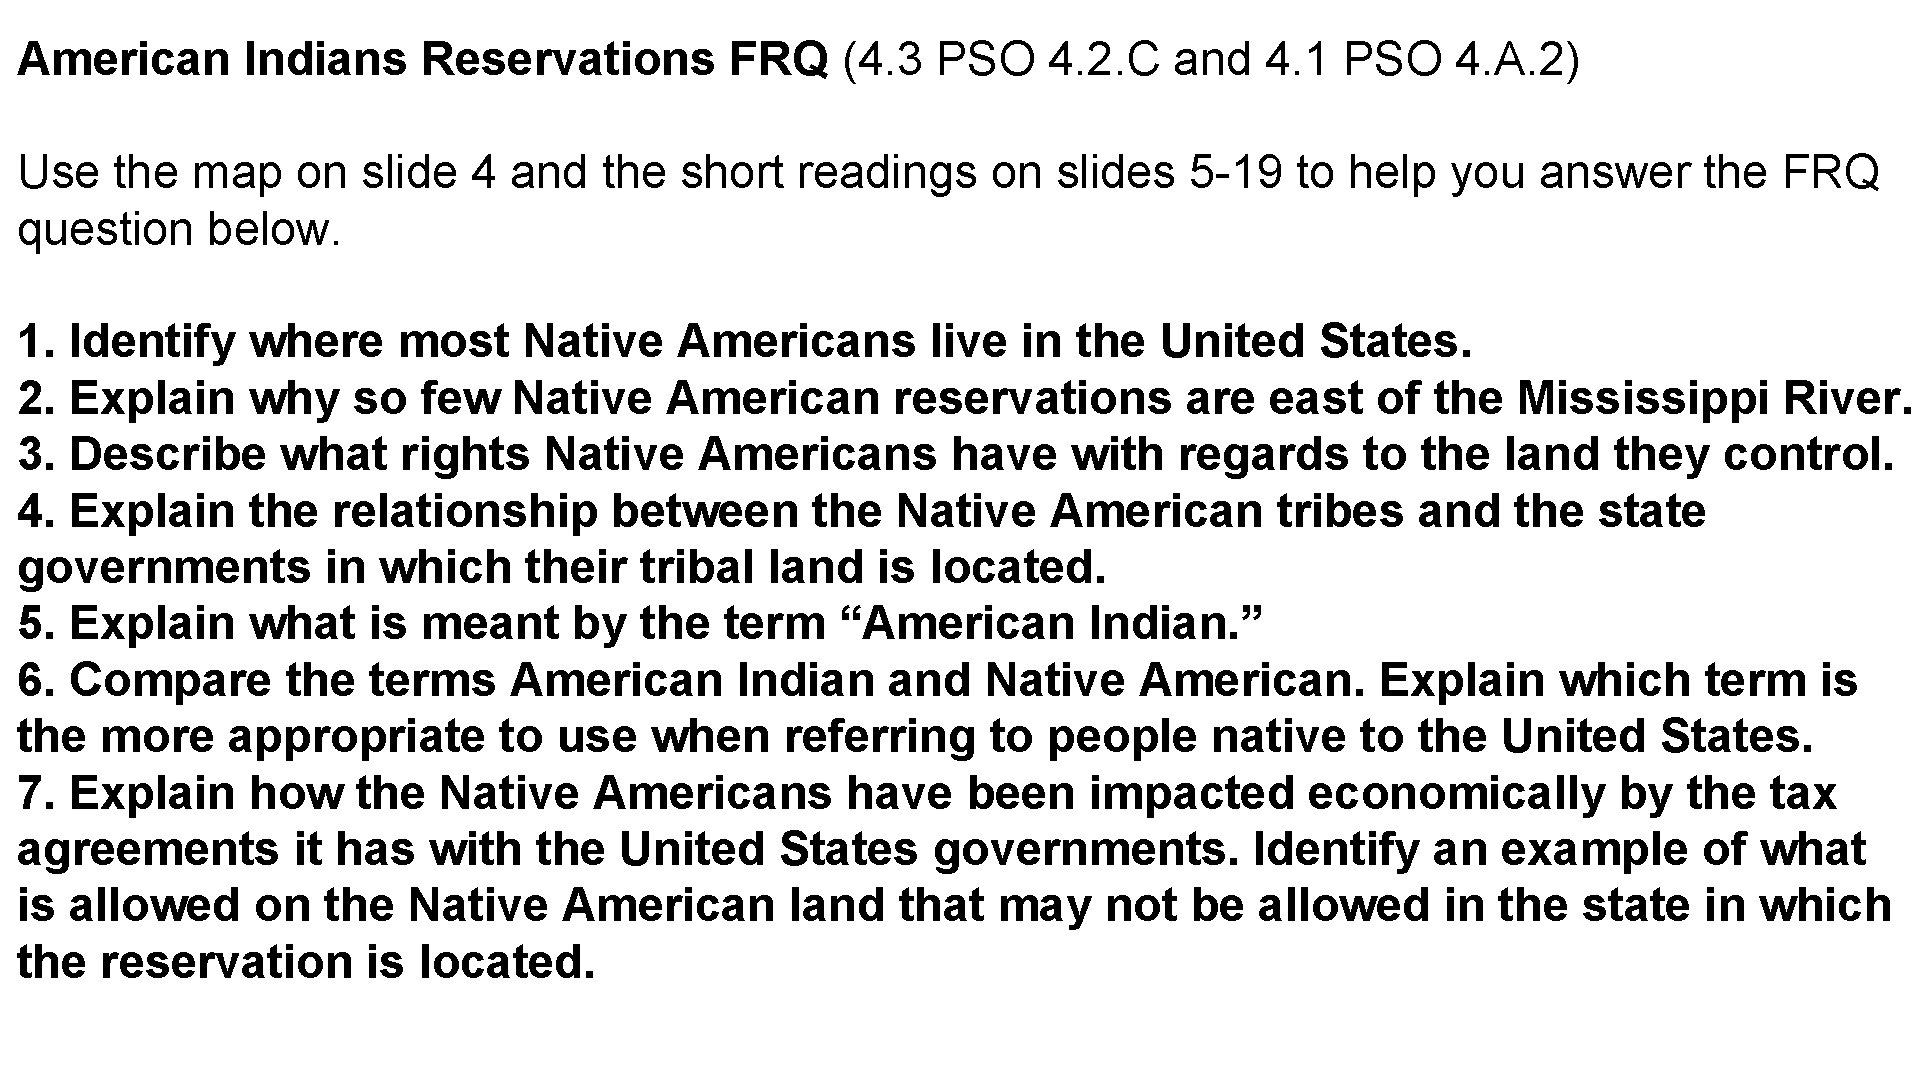 American Indians Reservations FRQ (4. 3 PSO 4. 2. C and 4. 1 PSO